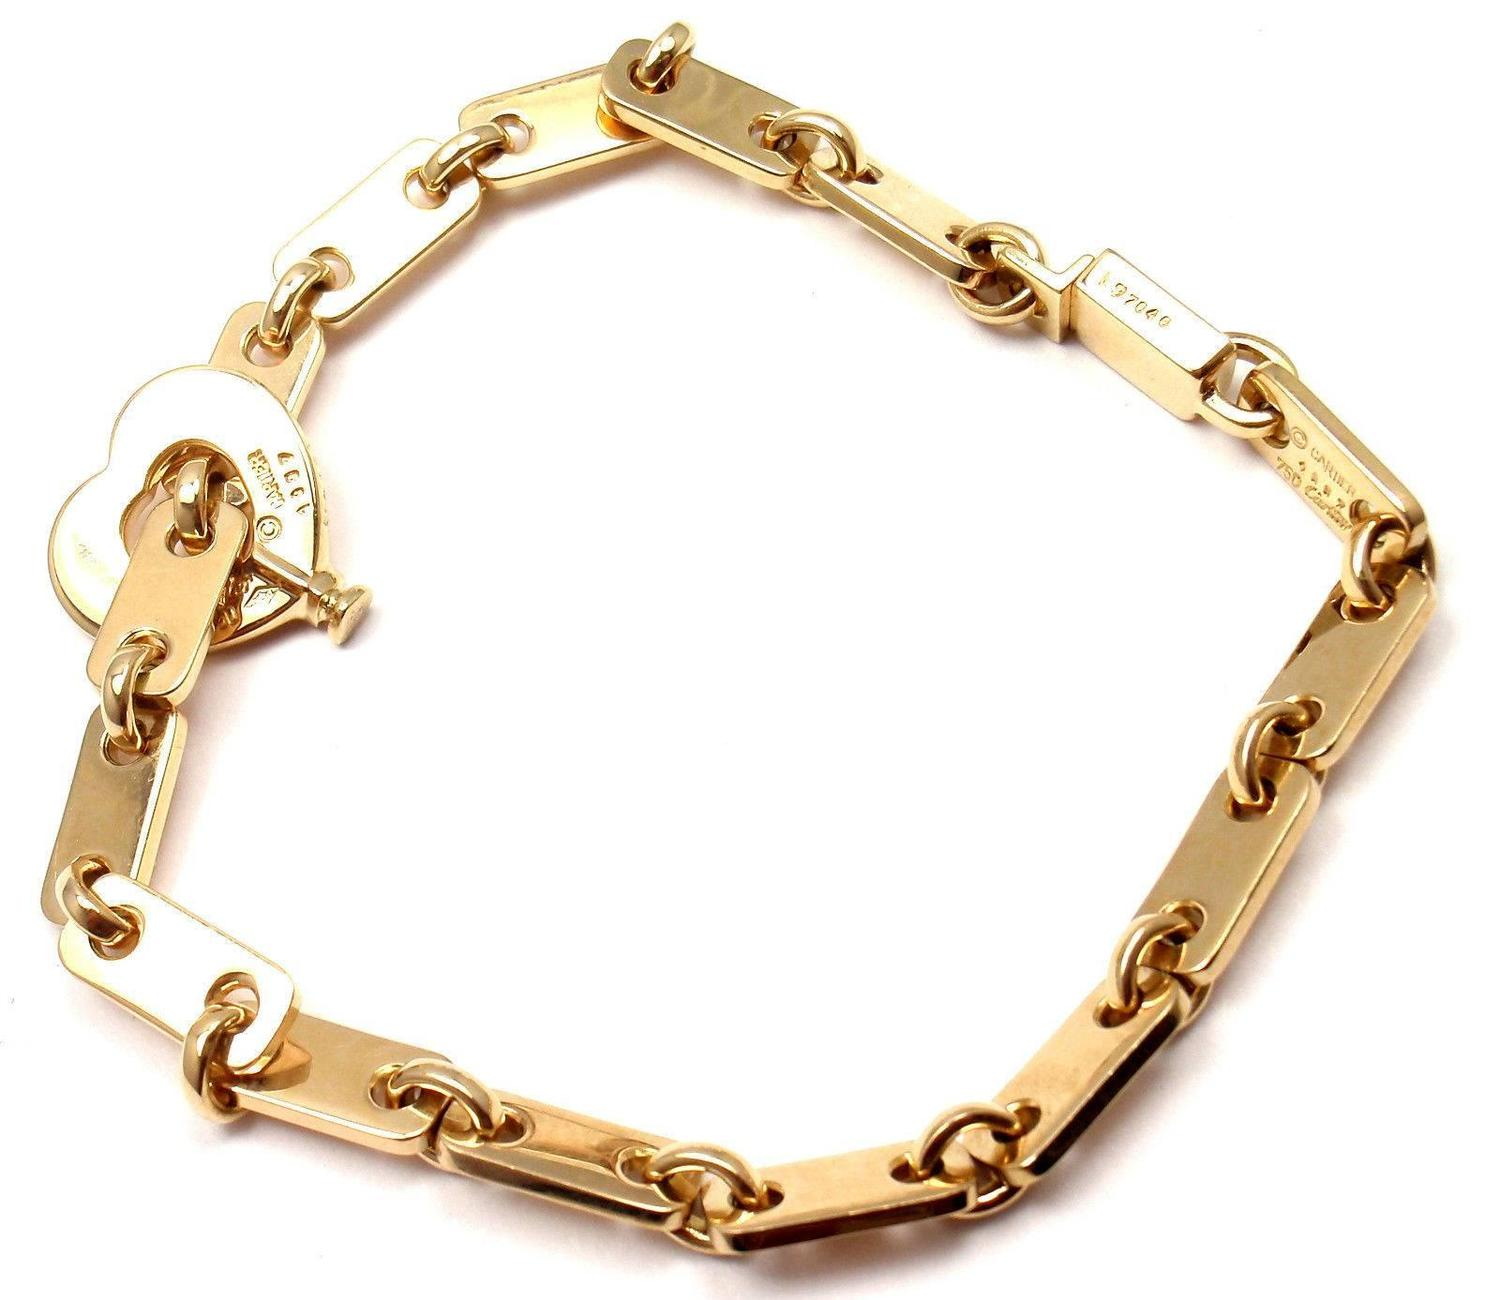 cartier locking bracelet cartier gold lock charm link bracelet at 1stdibs 3804